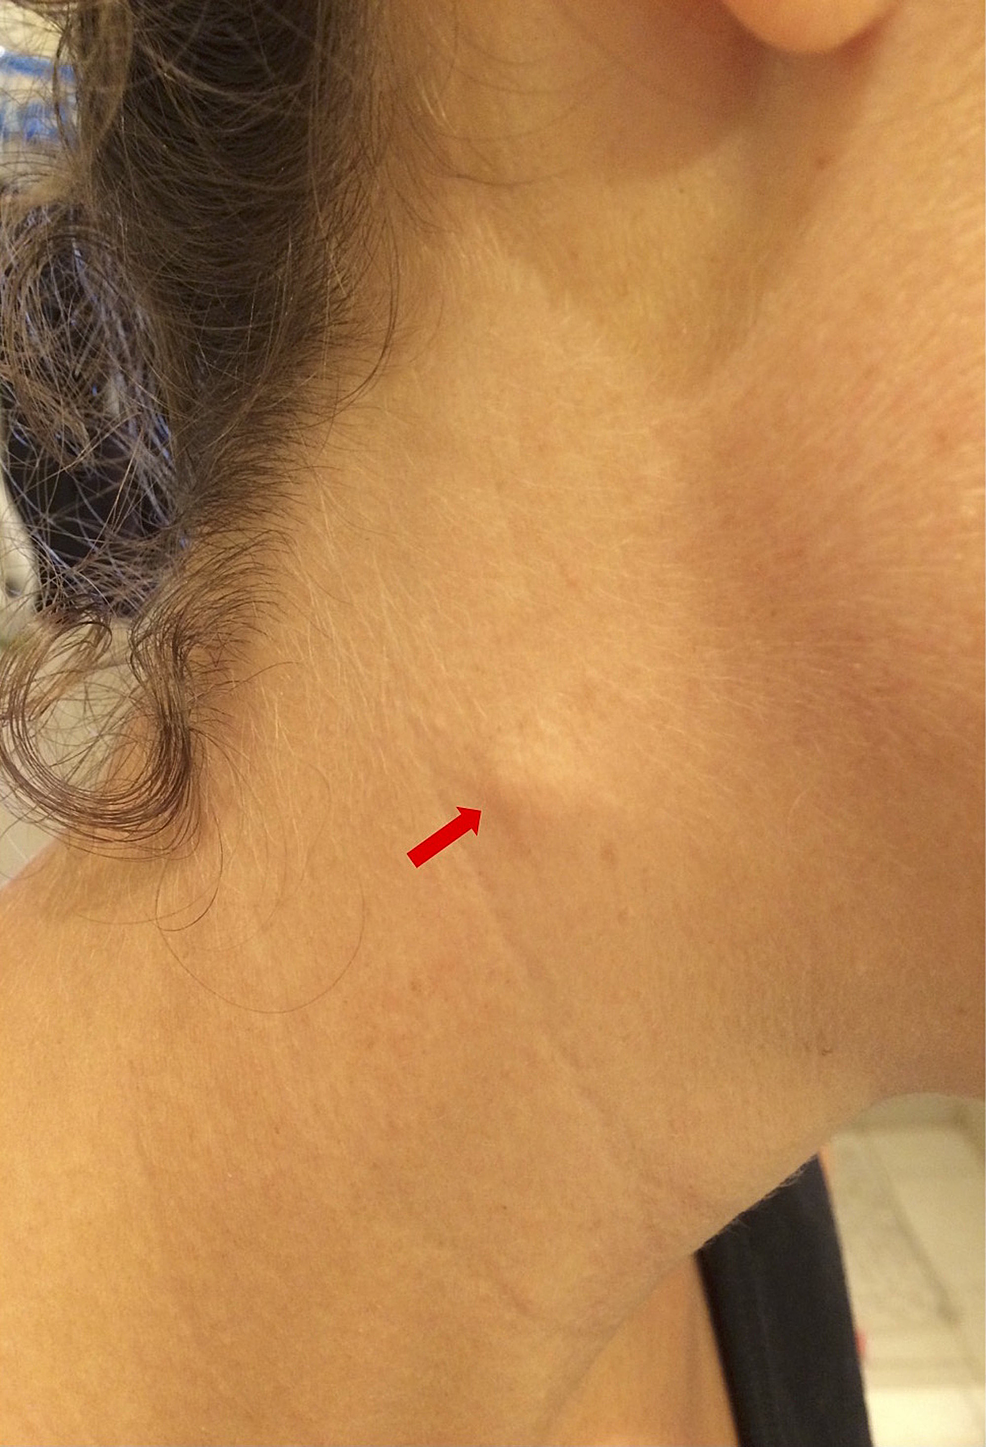 Swelling-on-the-right-sternocleidomastoid-muscle,-midway-along-its-anterior-border.-The-swelling-was-about-0.75-cm-in-length-x-0.5-cm-in-width.